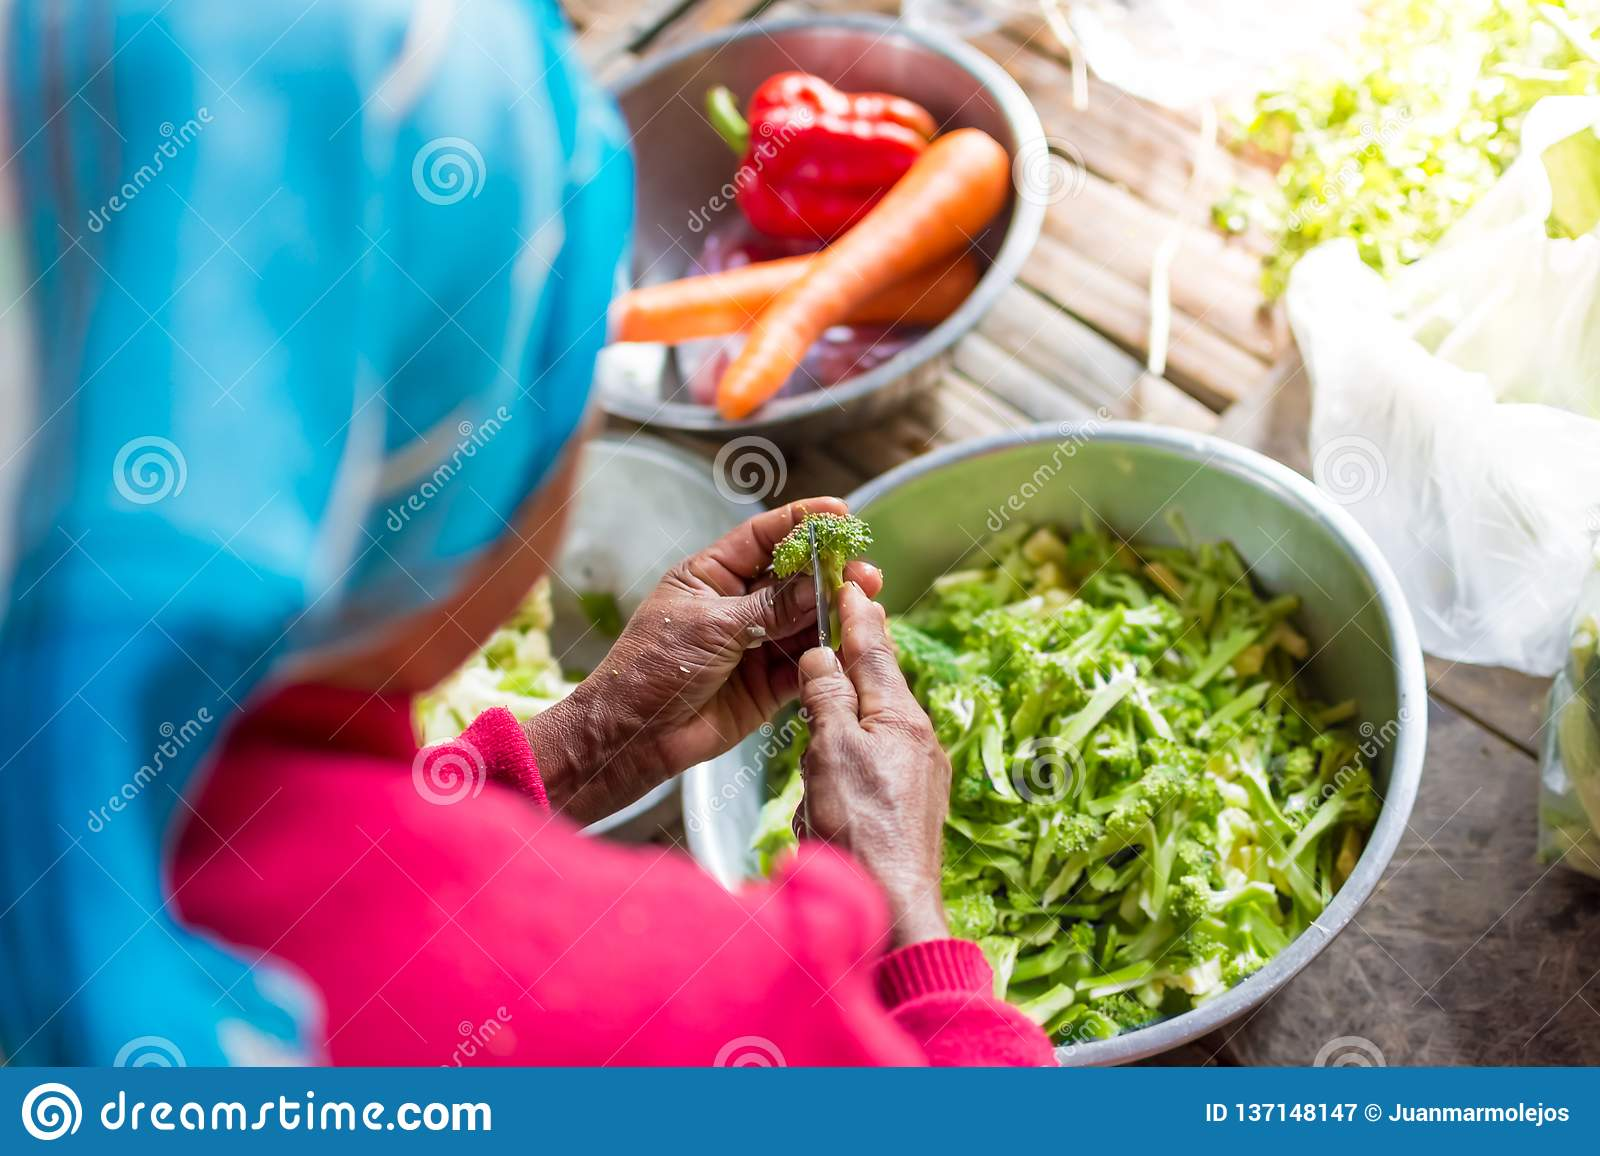 Old woman cutting vegetable in a village in Thailand